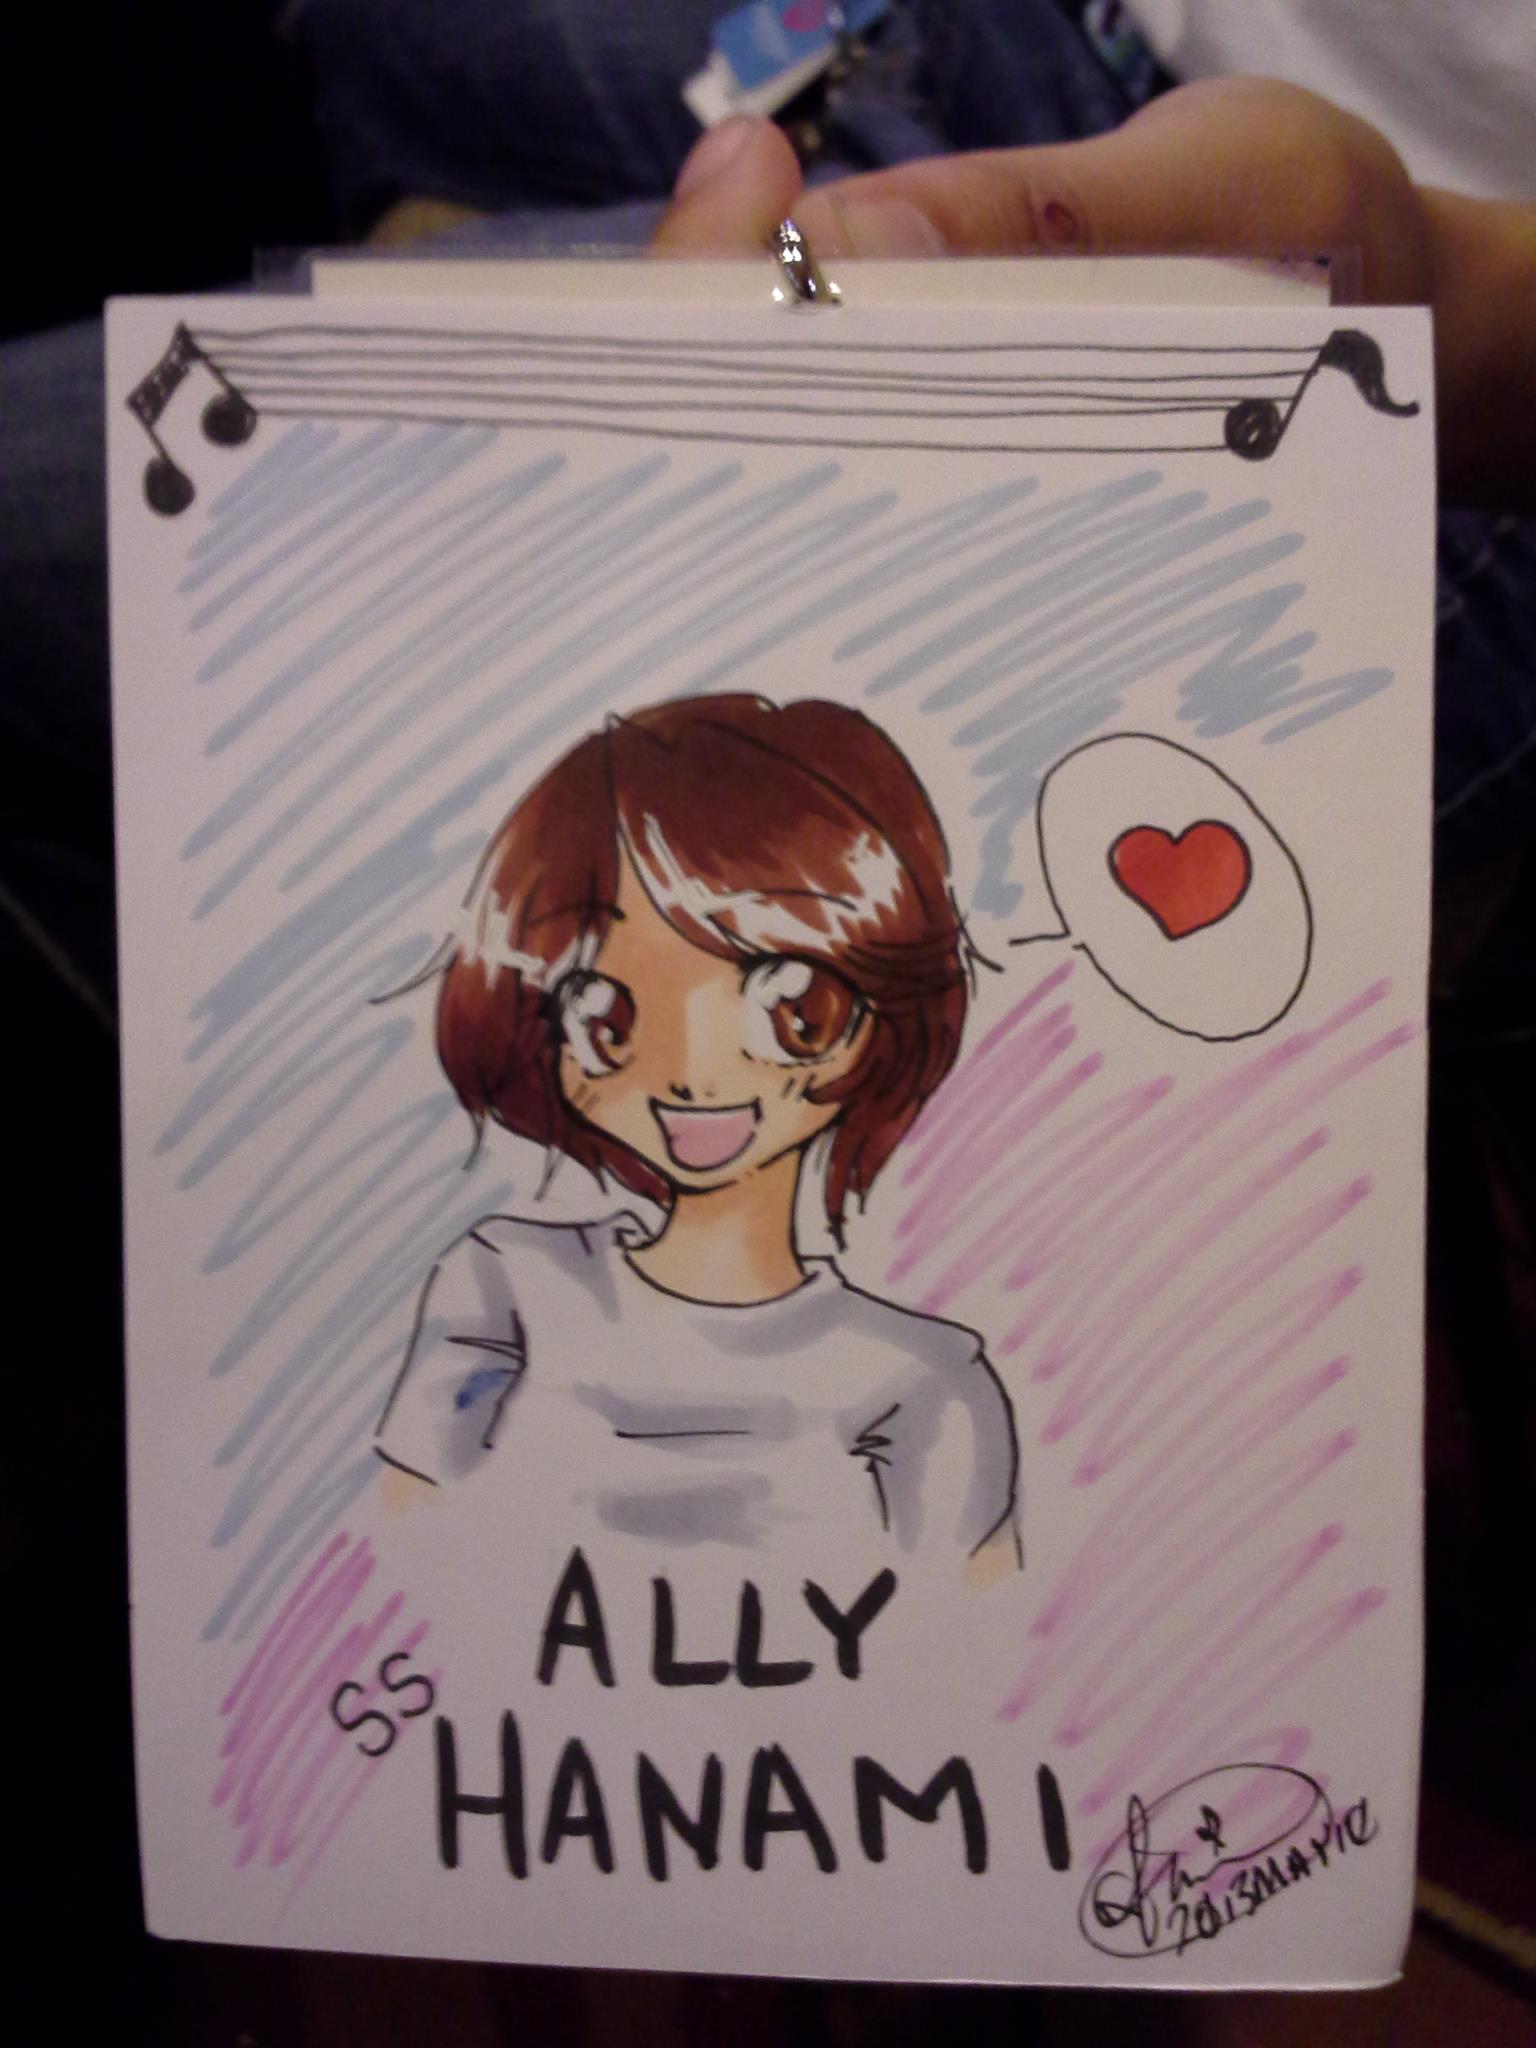 Beth [ hikaroo.deviantart.com ] drew custom badges for us at BelleCon, including our manager Ally